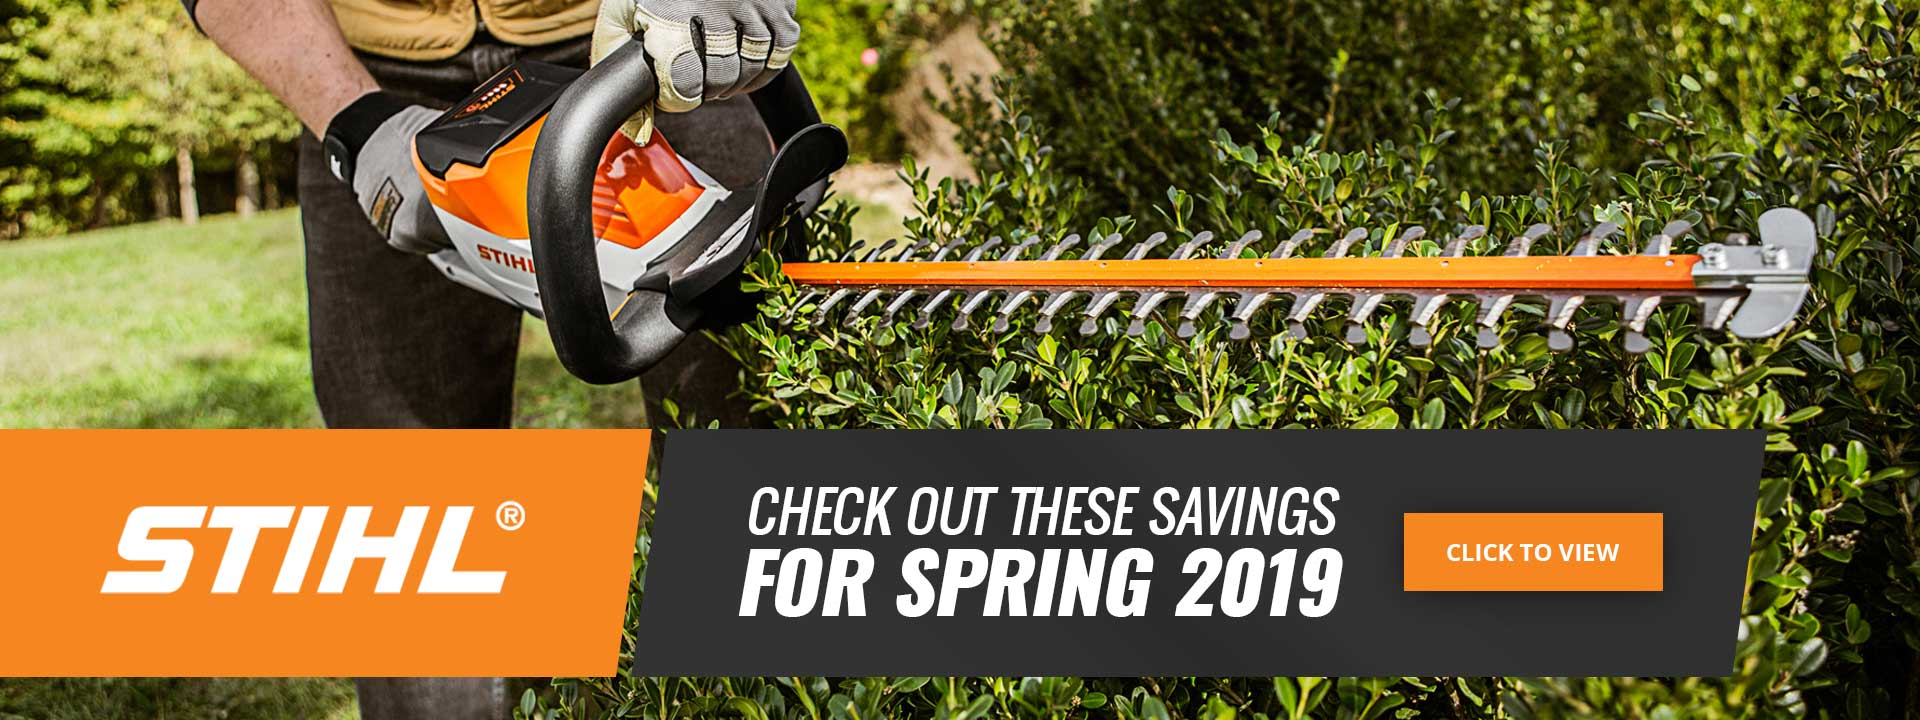 Stihl check out these savings for spring 2019